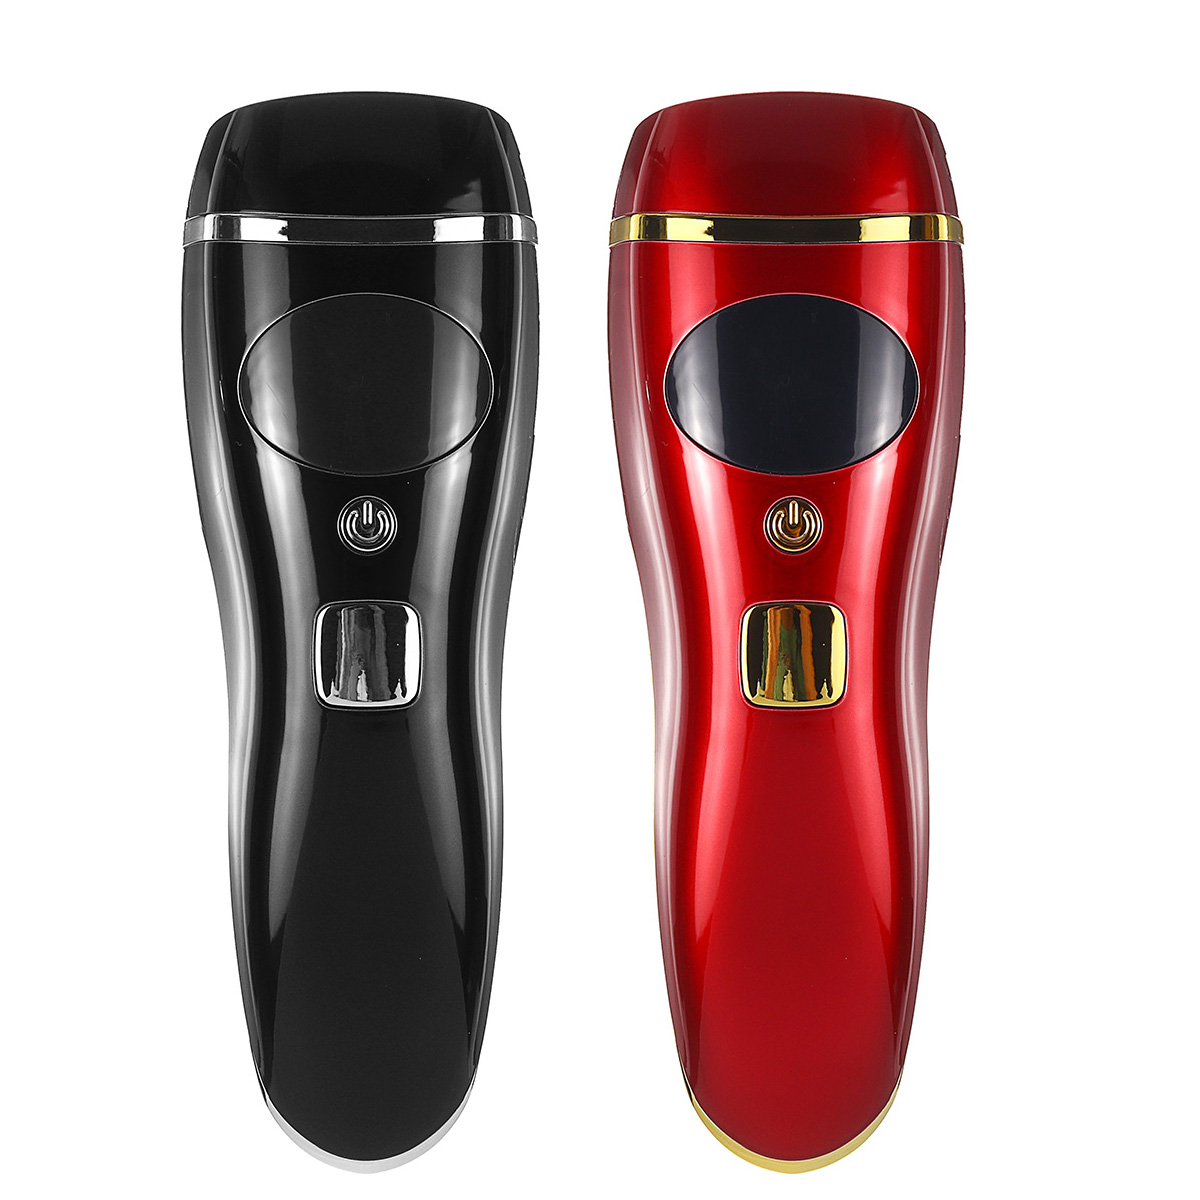 350000 Pulses Laser IPL Photon Permanent Hair Removal